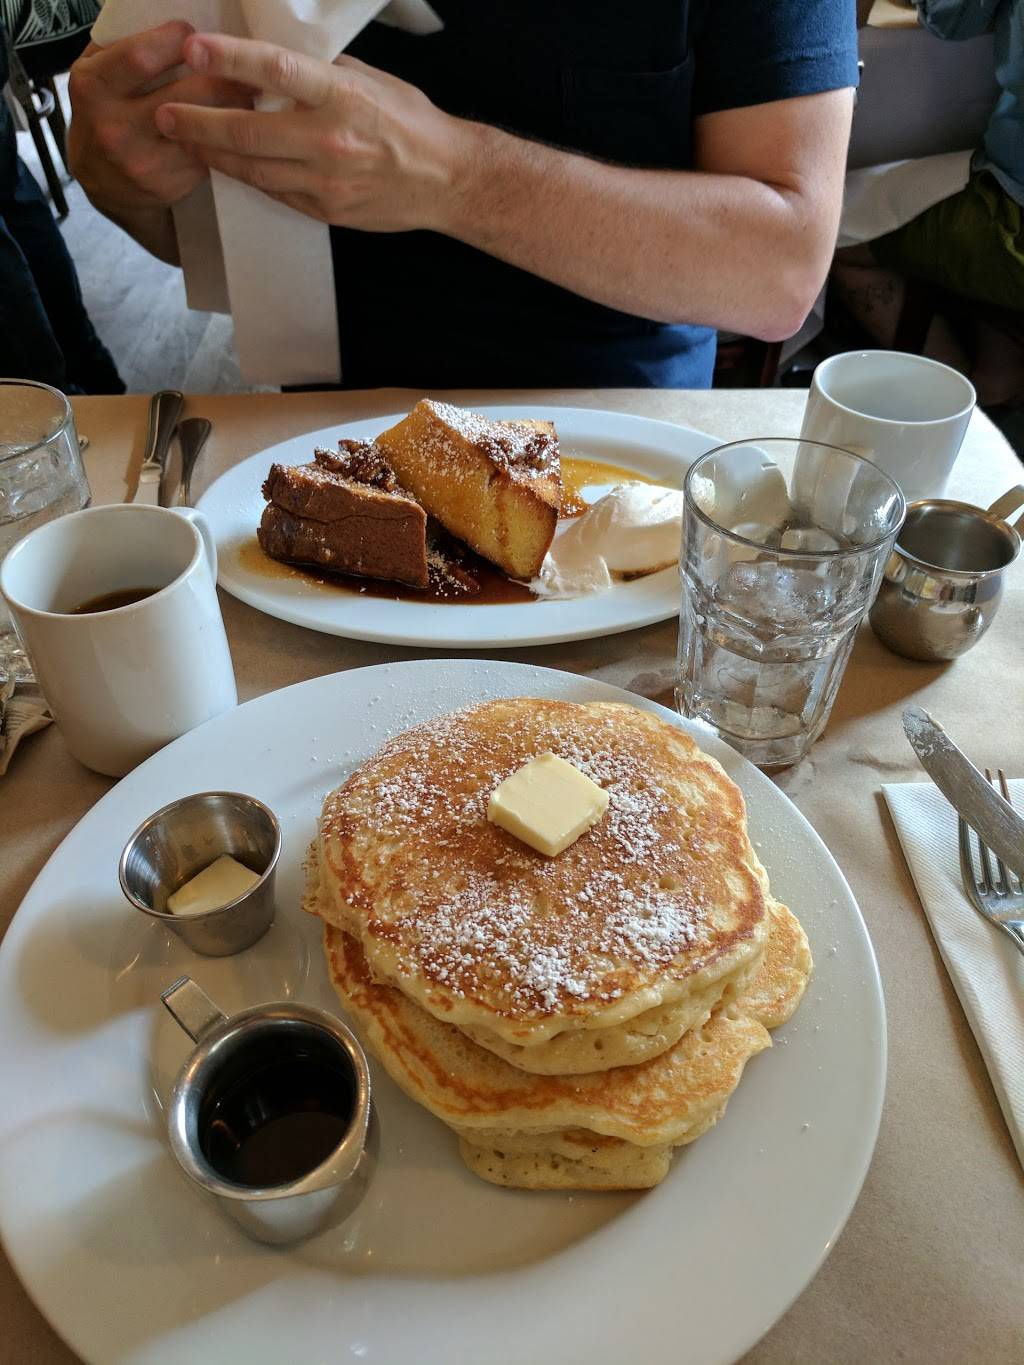 Buttermilk Channel | restaurant | 524 Court St, Brooklyn, NY 11231, USA | 7188528490 OR +1 718-852-8490